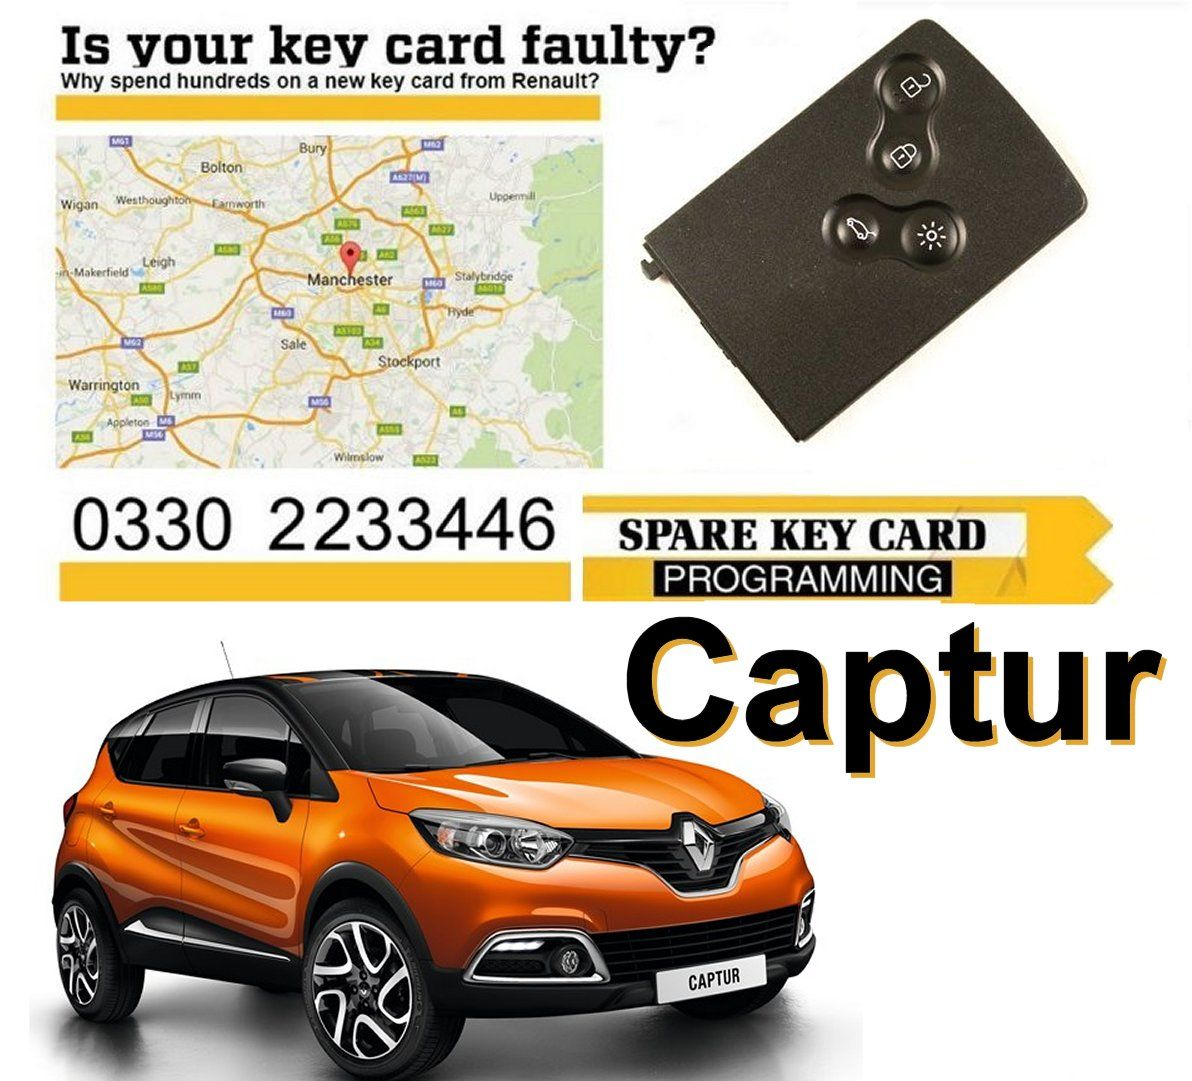 Renault Captur 2016 Replacement 4 Button Remote Key Card Renault